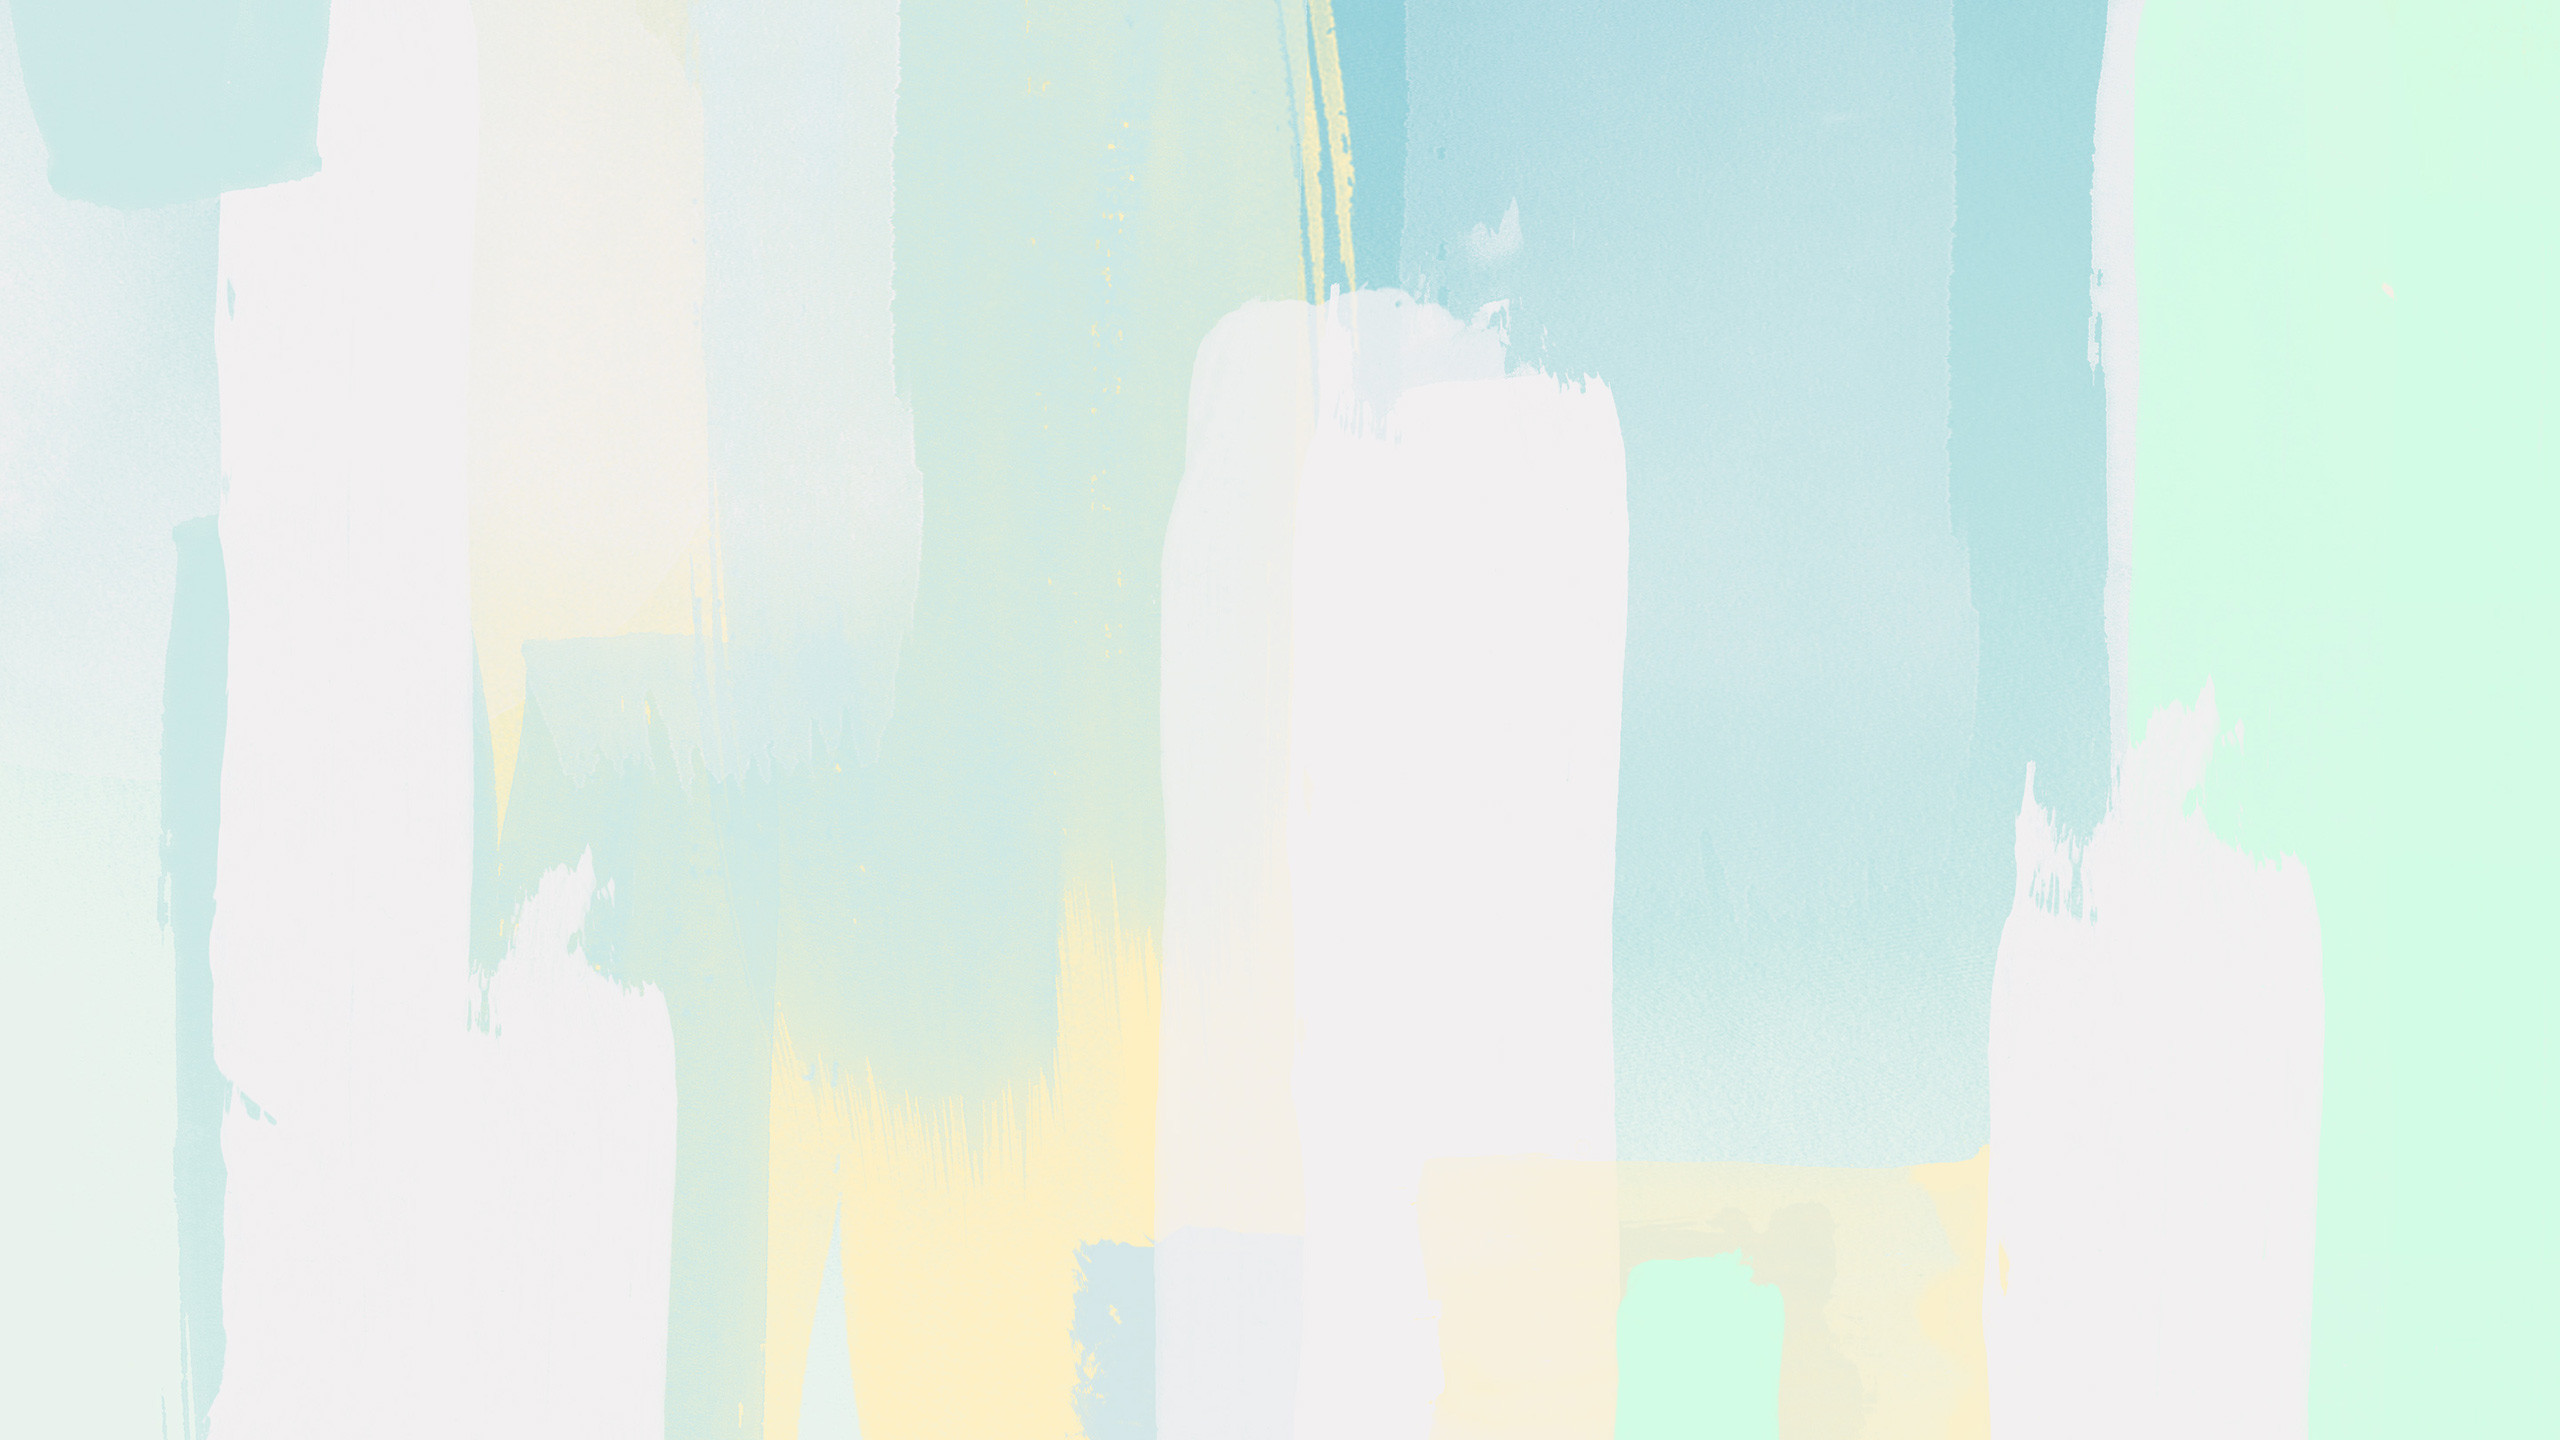 I like the calming and casual brush strokes but would want the colors  changed. Original · Blue YellowMint GreenBrush StrokesWallpaper …